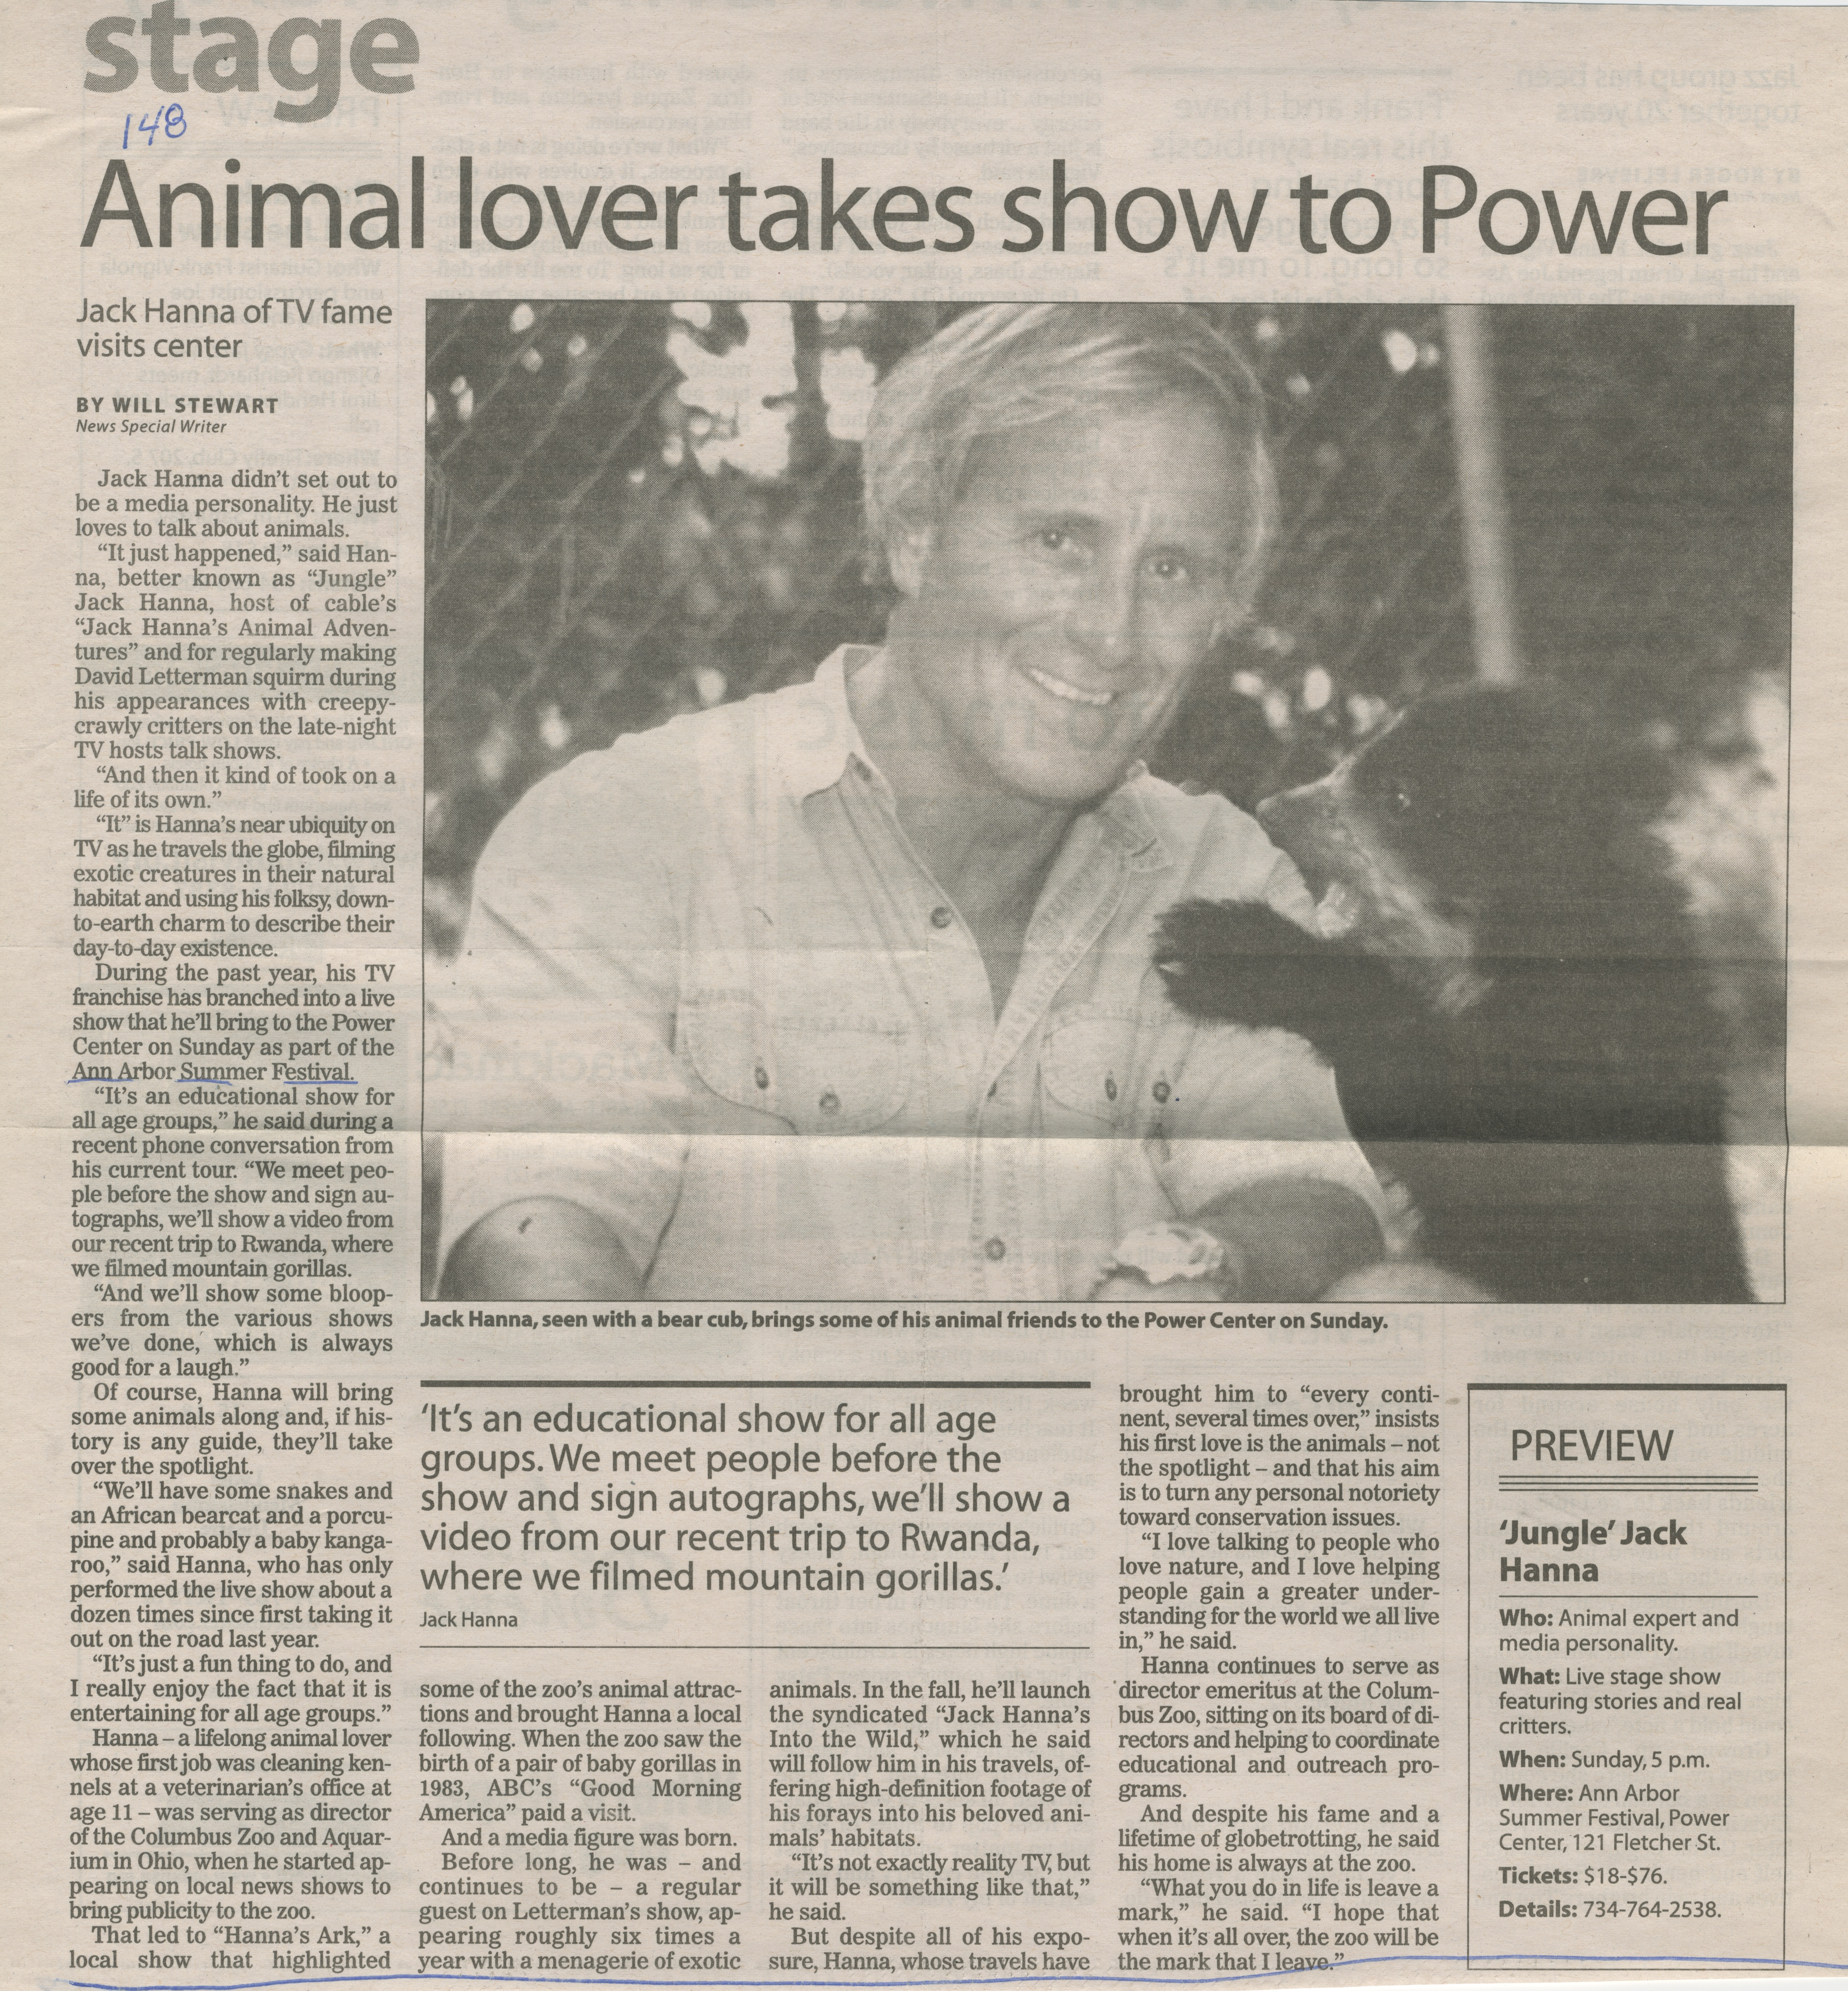 Animal lover takes show to Power: Jack Hanna of TV fame visits center image